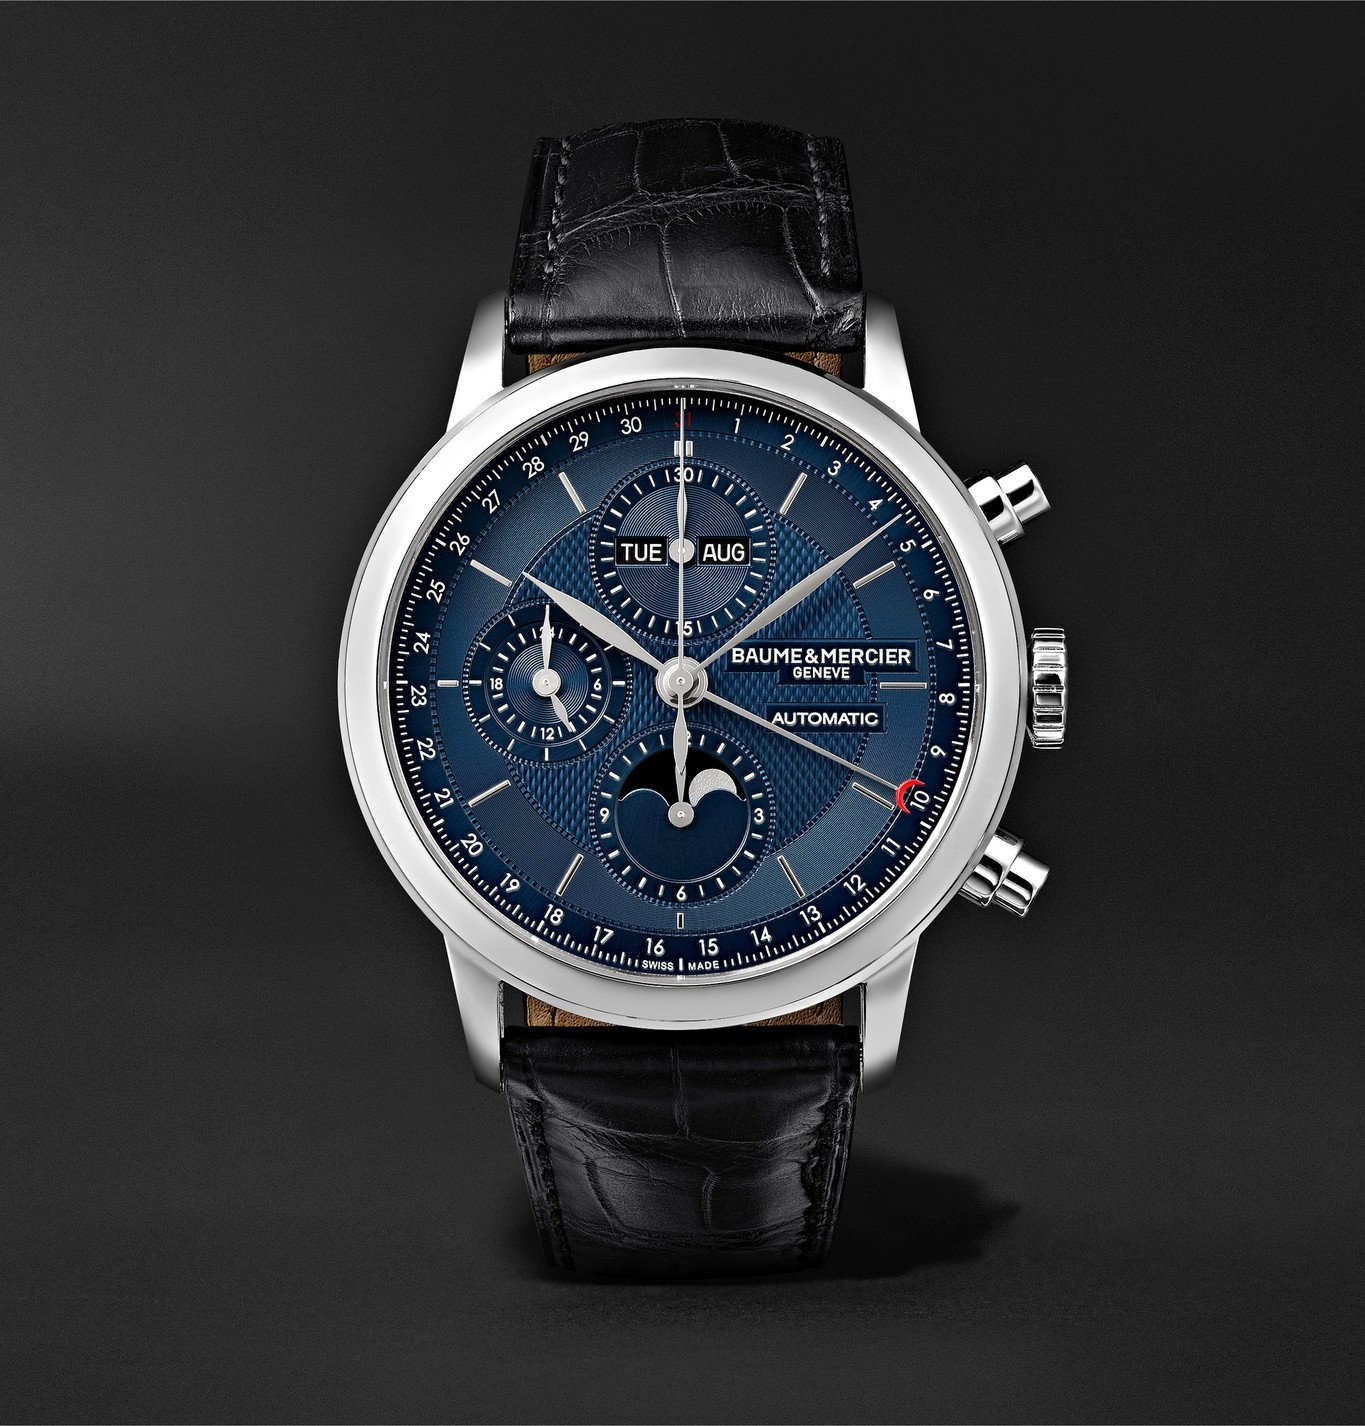 Photo: Baume & Mercier - Classima Automatic Moon-Phase Calendar Chronograph 42mm Stainless Steel and Alligator Watch, Ref. No. M0A10484 - Blue